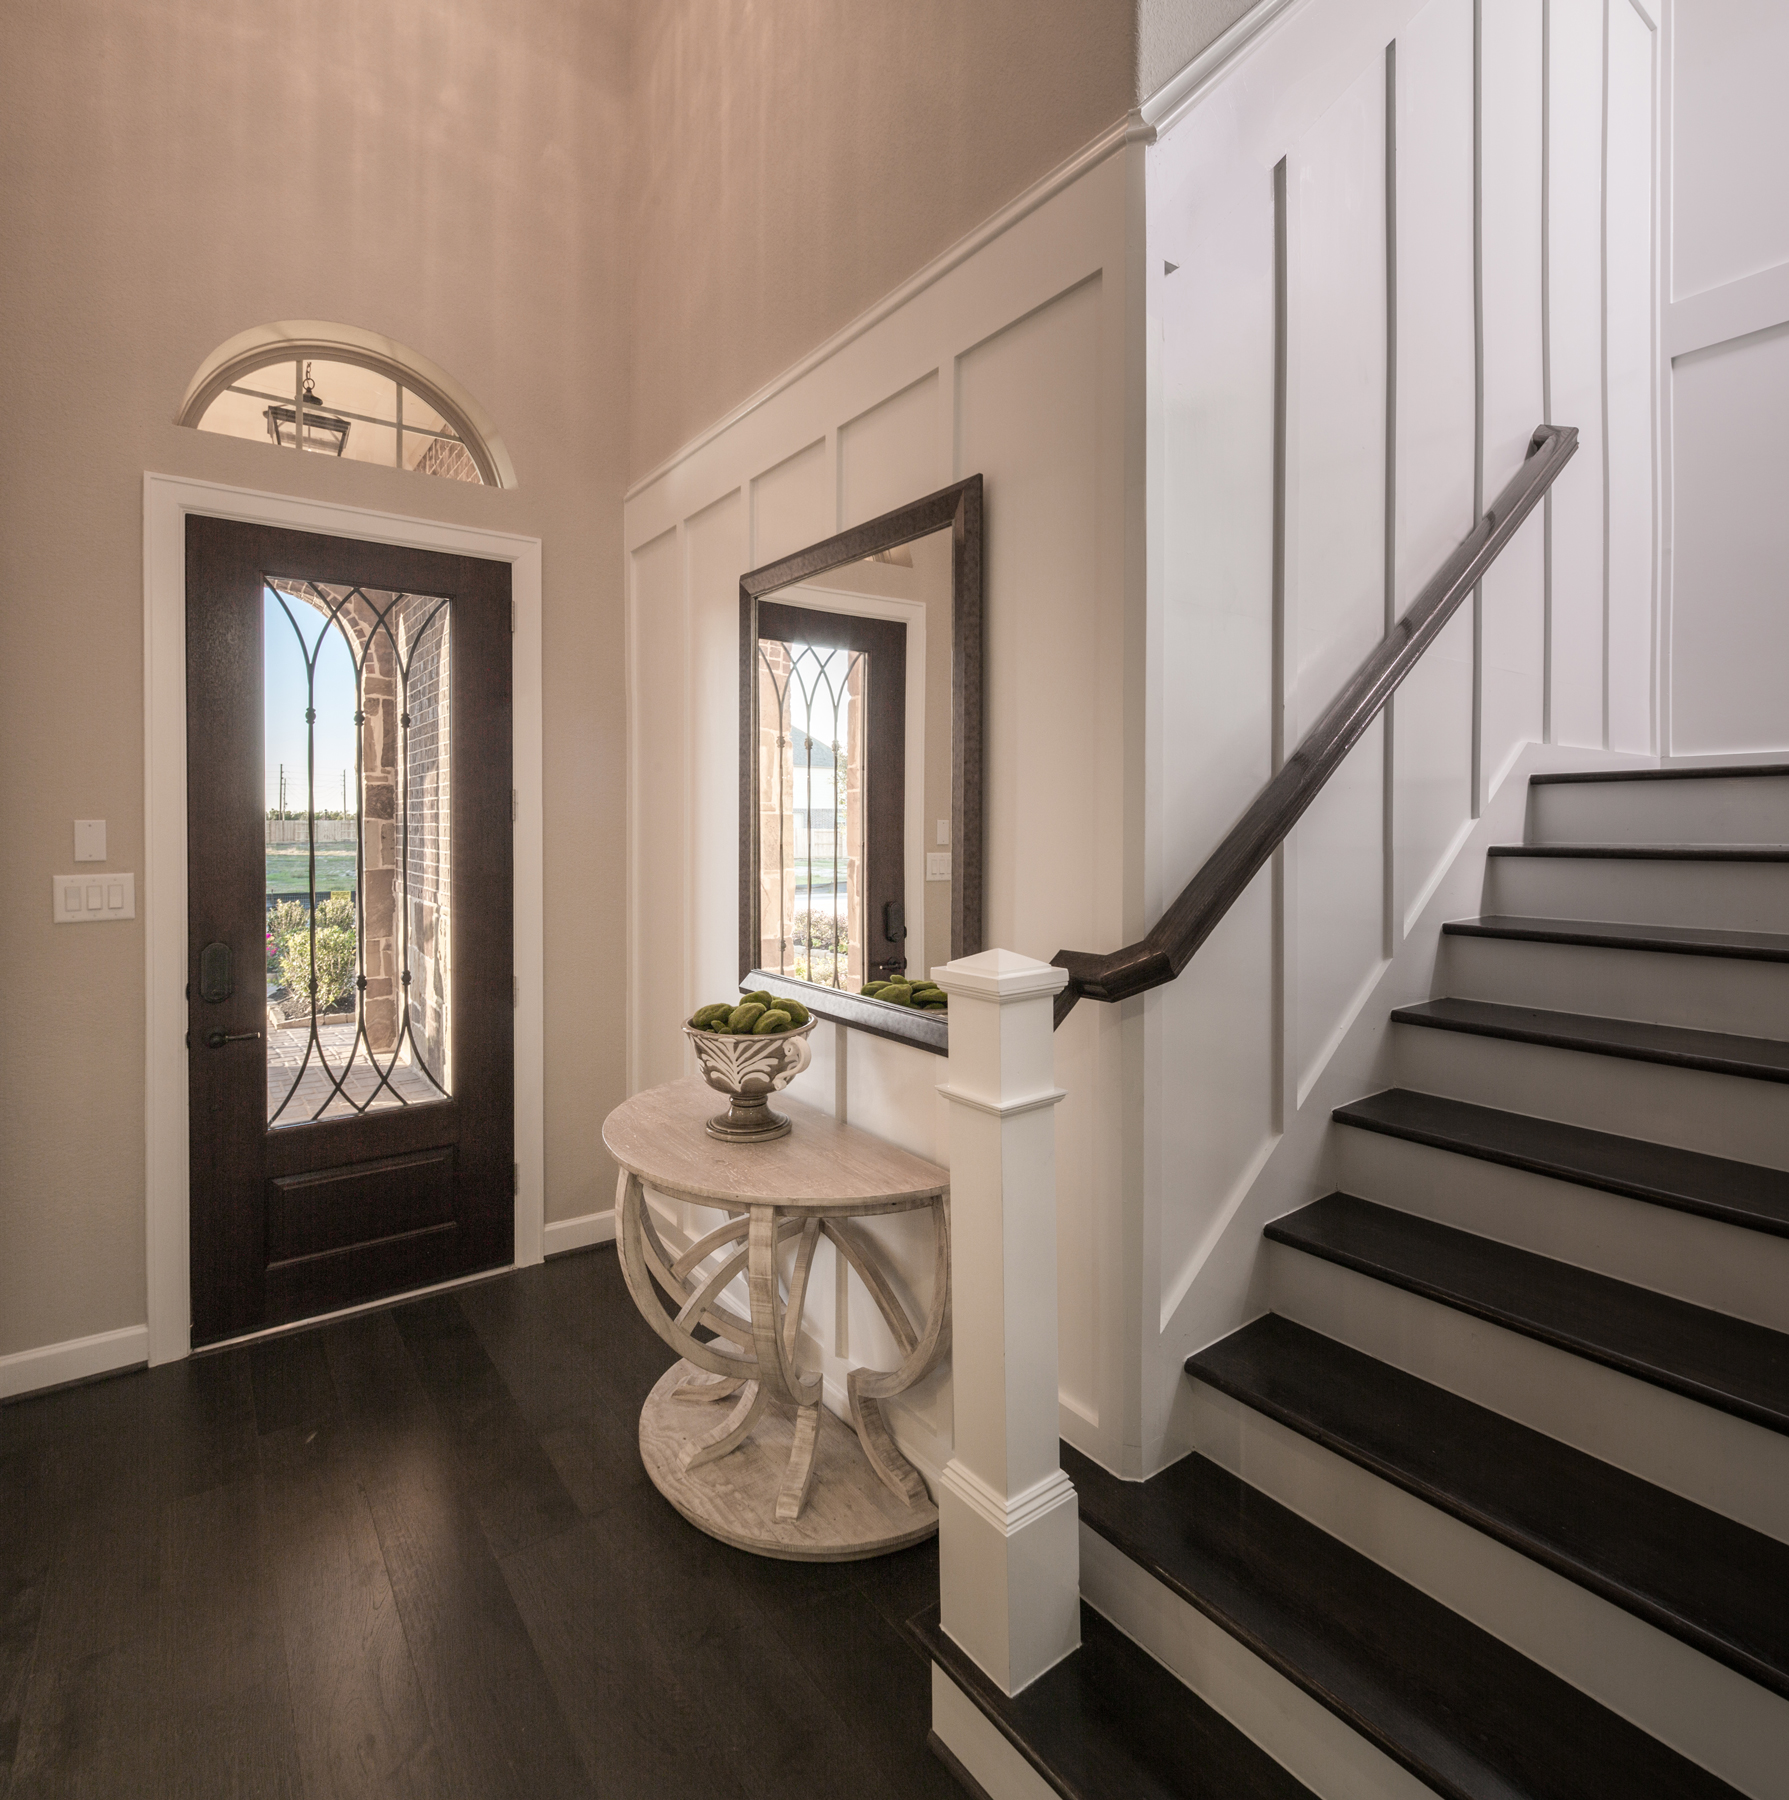 Board and batten interior ideas - wainscoting